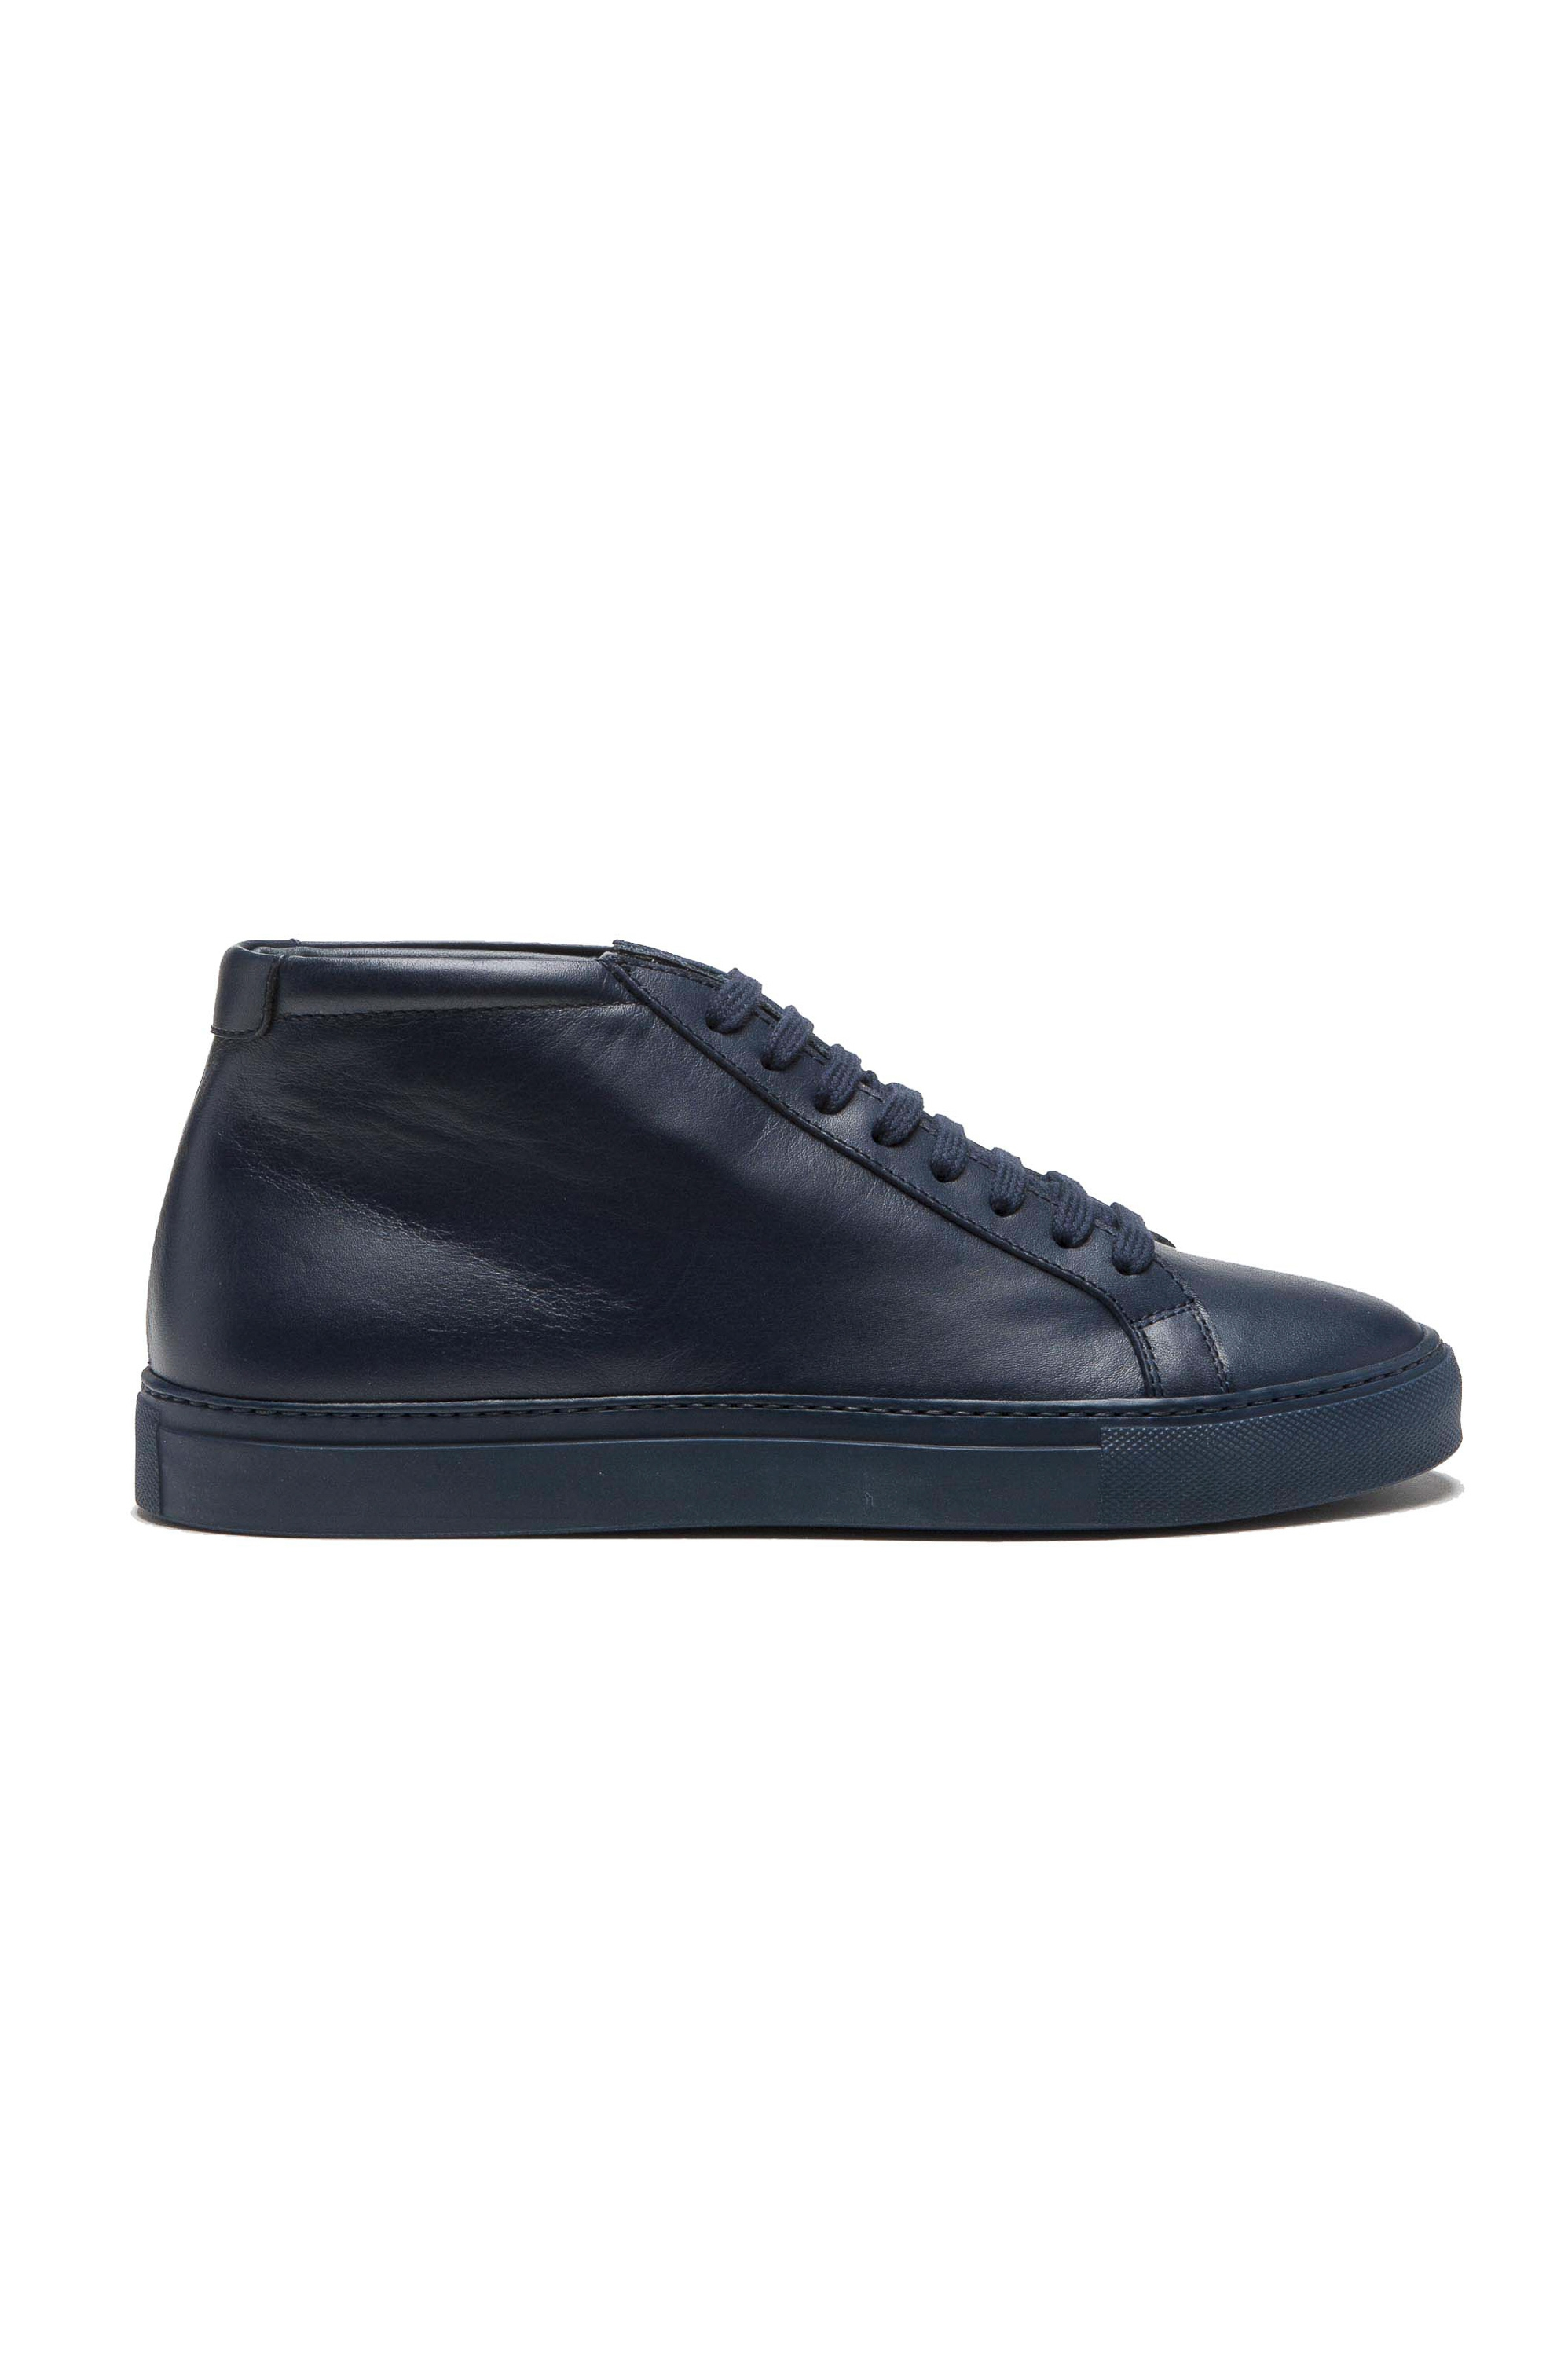 SBU 01522 Mid top lace up sneakers in blue calfskin leather 01